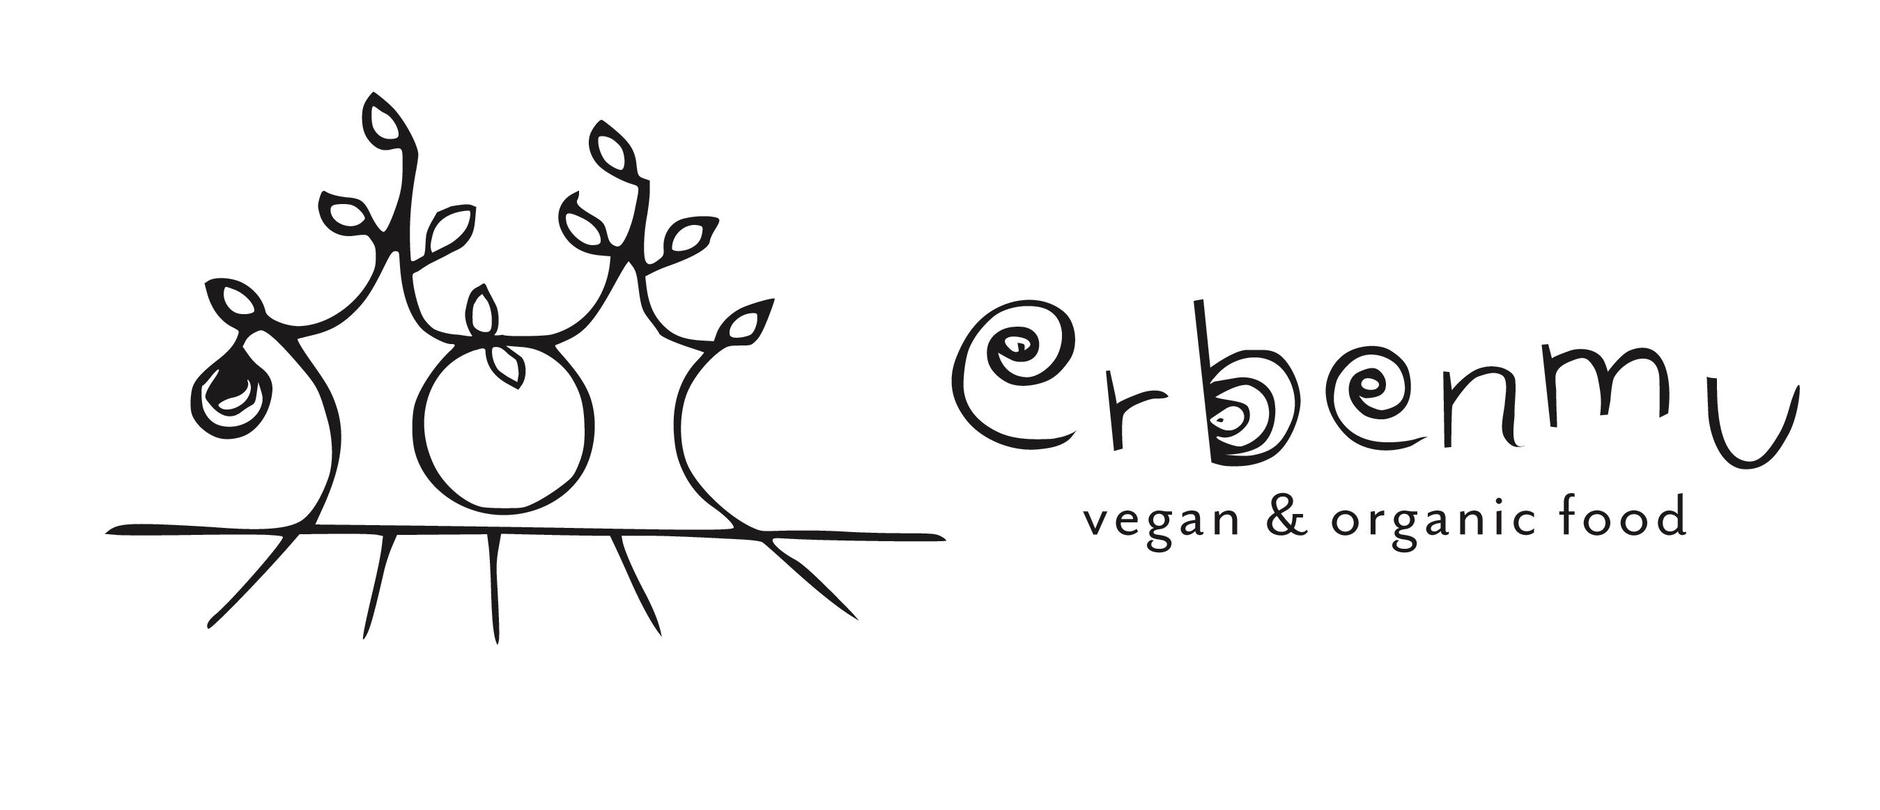 erbenmu vegan & organic food